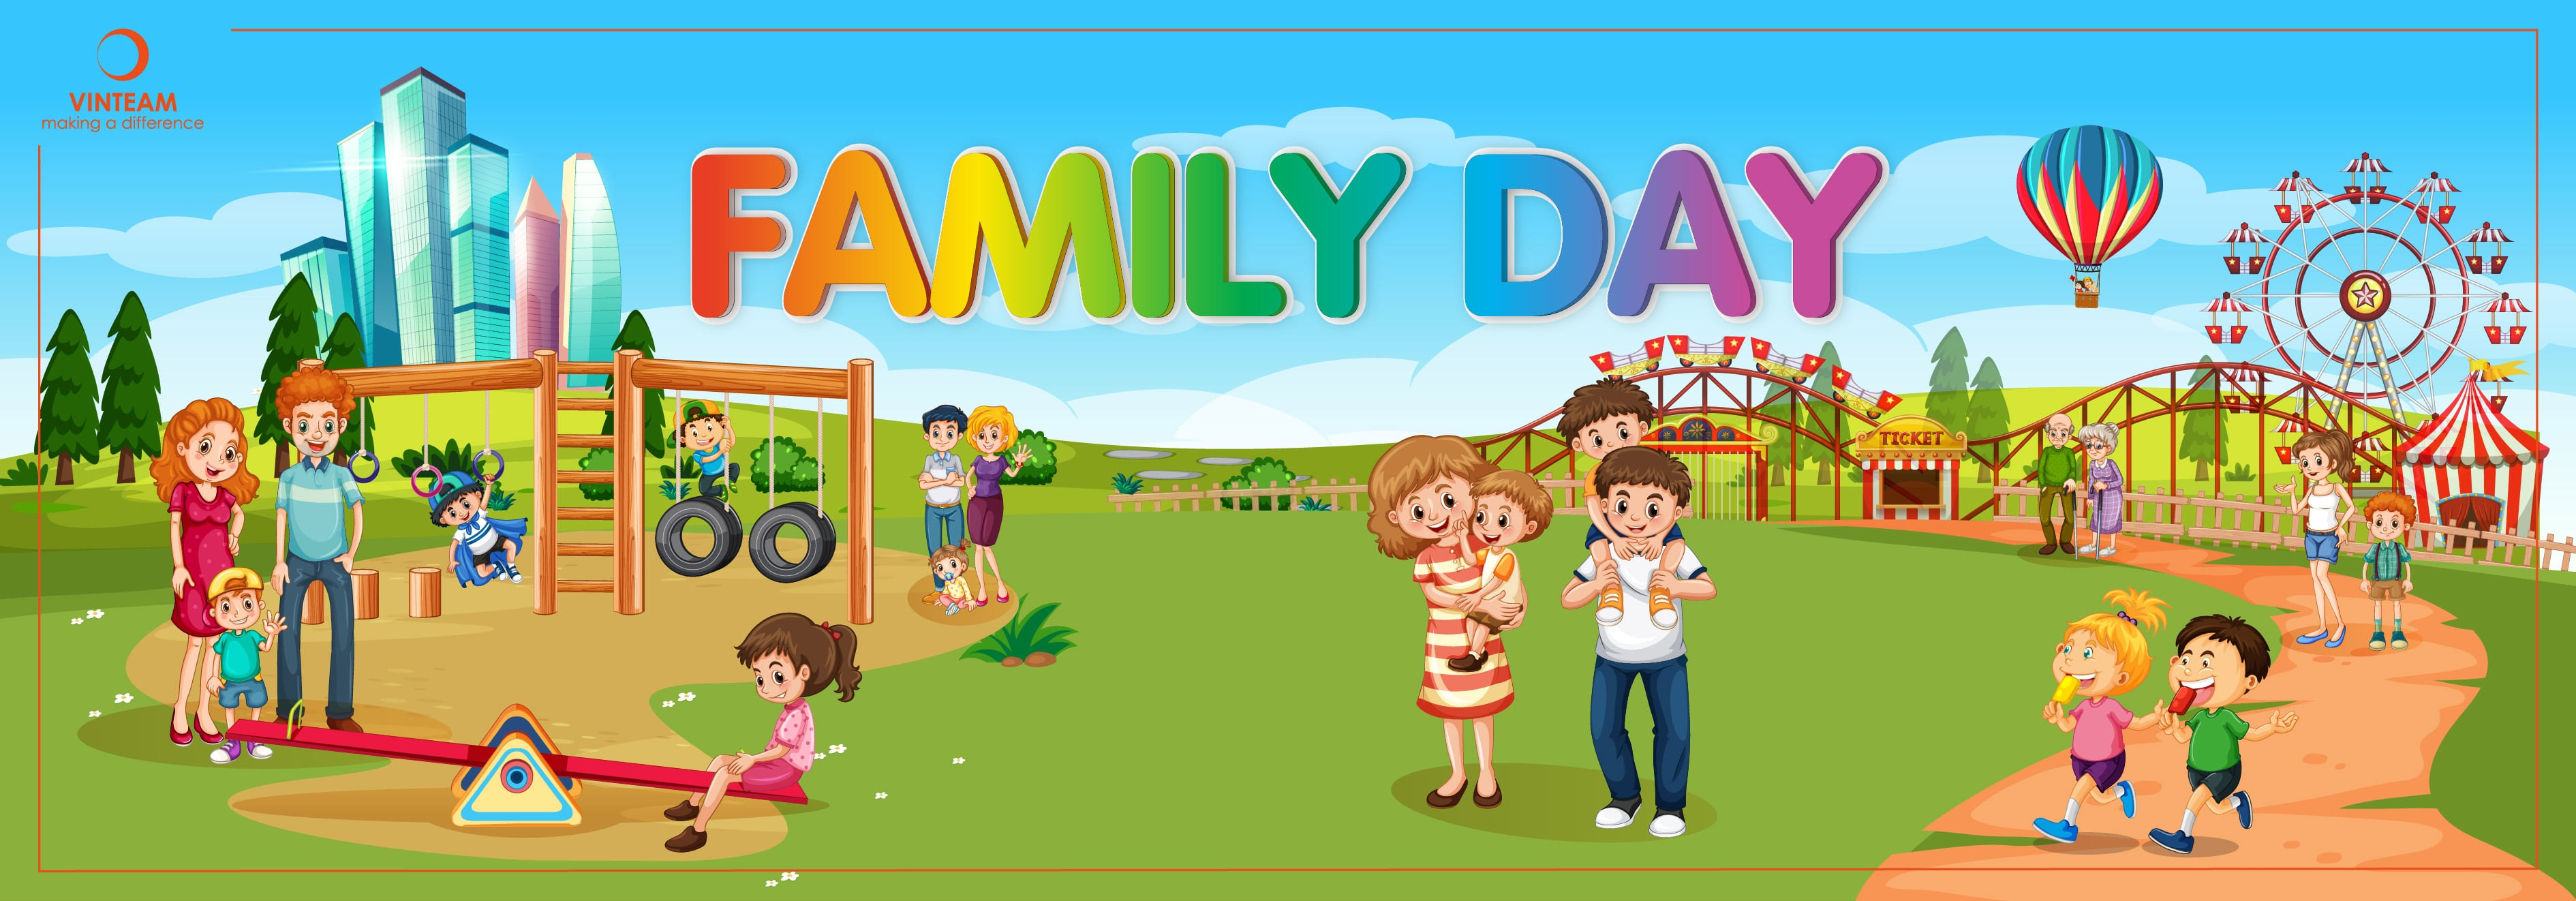 18-COVER-FAMILY-DAY-01-min